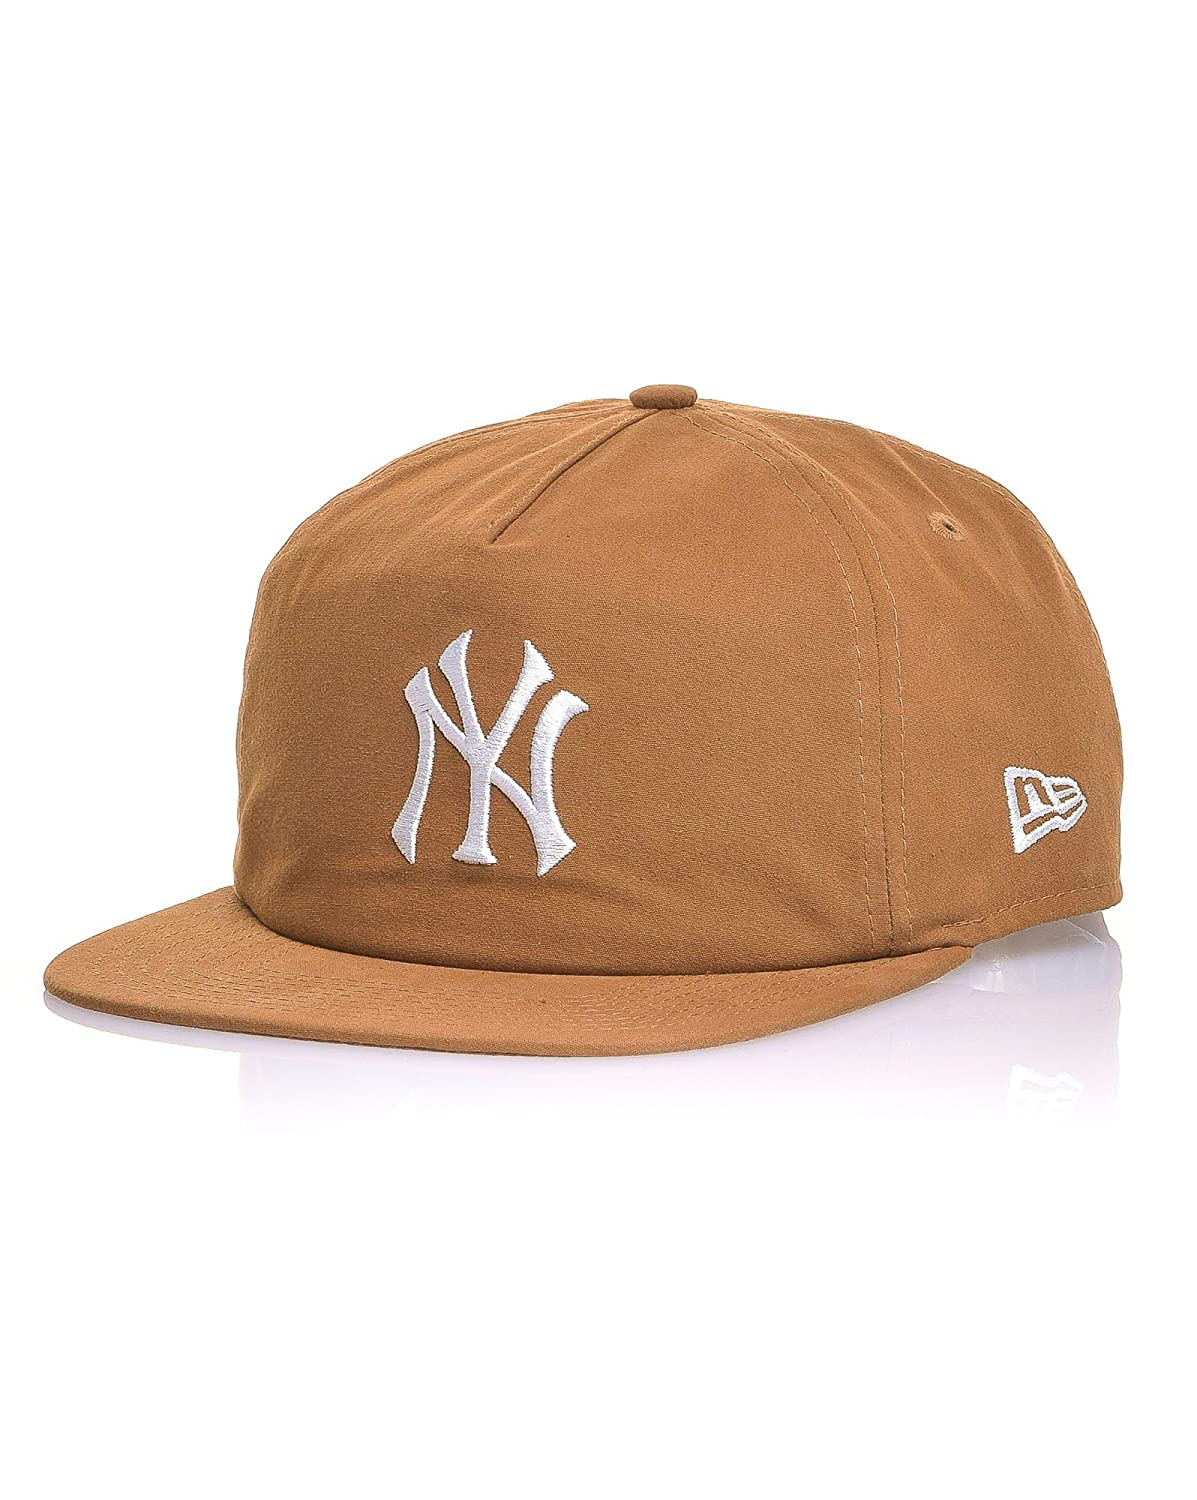 a5d274426 New Era Cap: MLB NY Yankees BR: Amazon.co.uk: Clothing